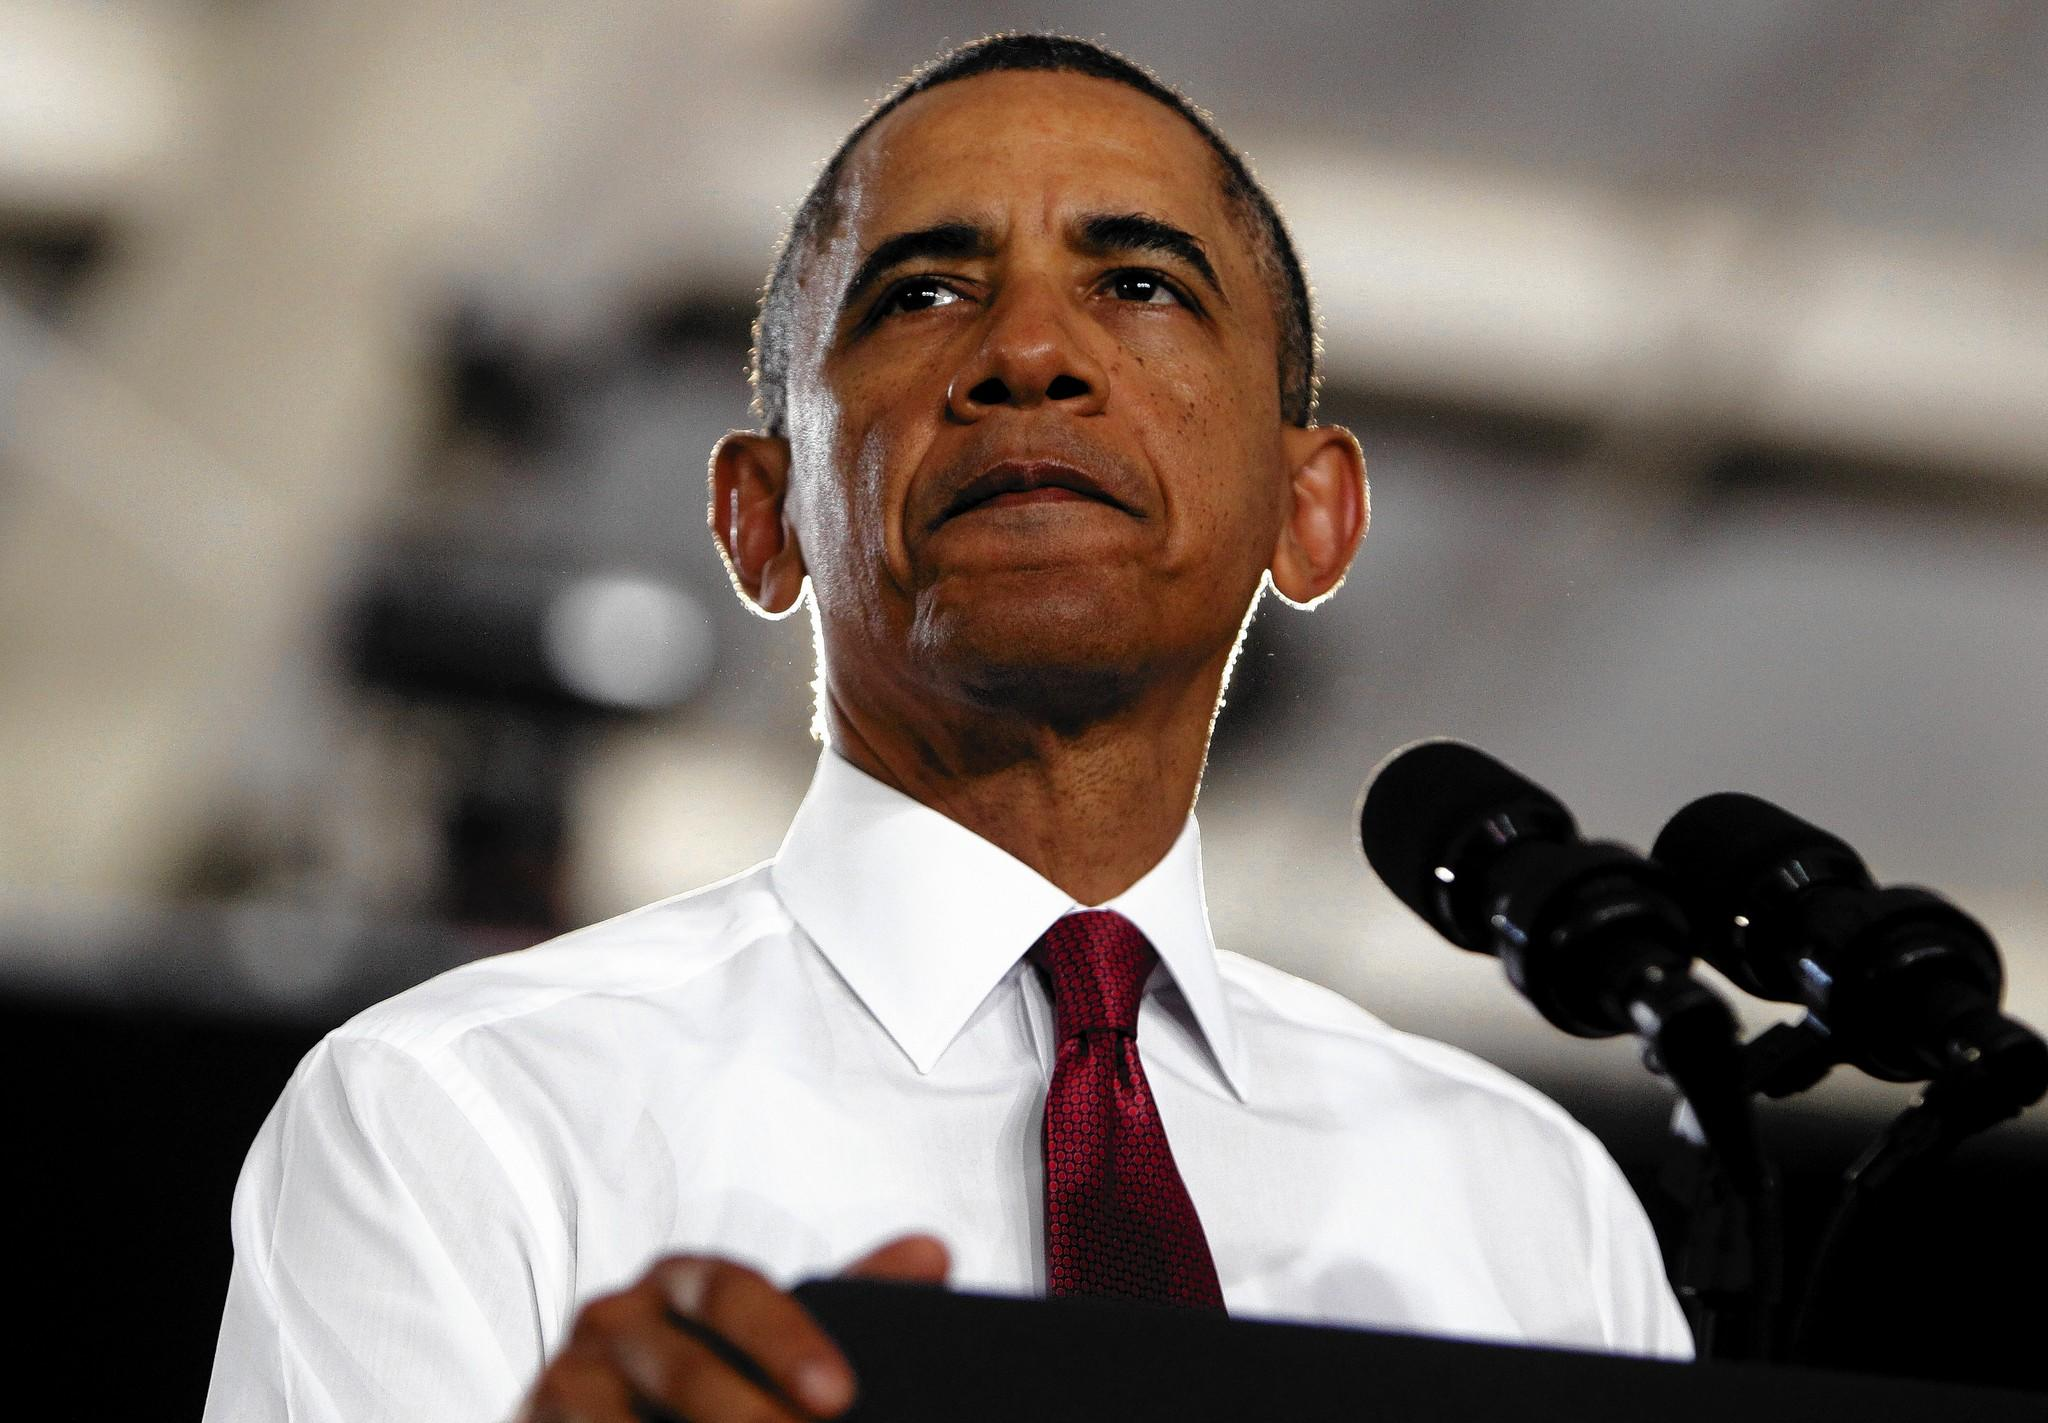 President Obama, who spoke Wednesday at North Carolina State University in Raleigh, is scheduled Friday to outline his plans for revamping government surveillance.